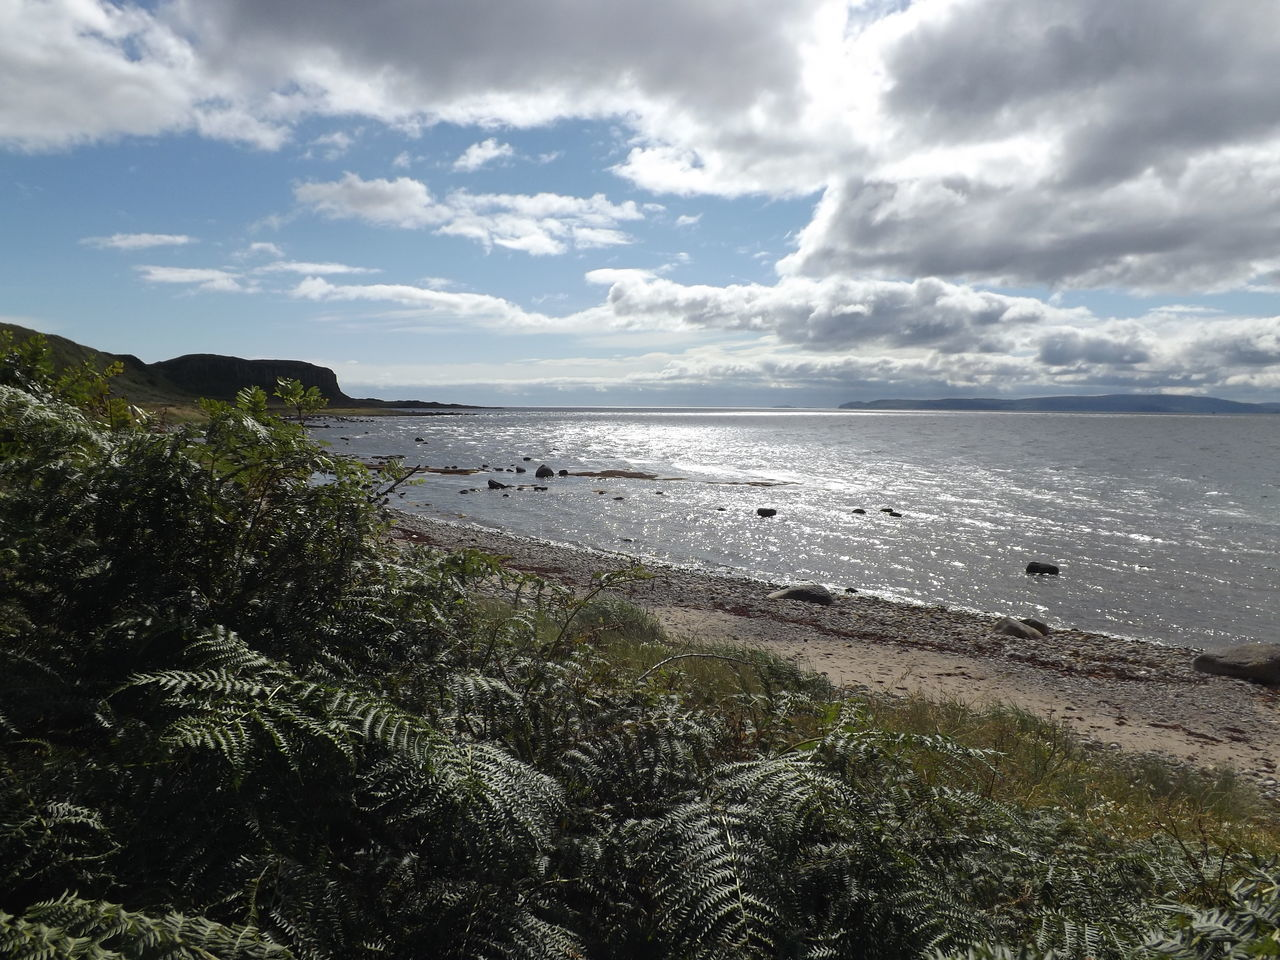 Beach Beauty In Nature Coastline Day Fern Ferns Horizon Over Water Isle Of Arran  Landscape Nature No People Outdoors Plants Scenics Scotland Sea Sea And Sky Silver Water Sky